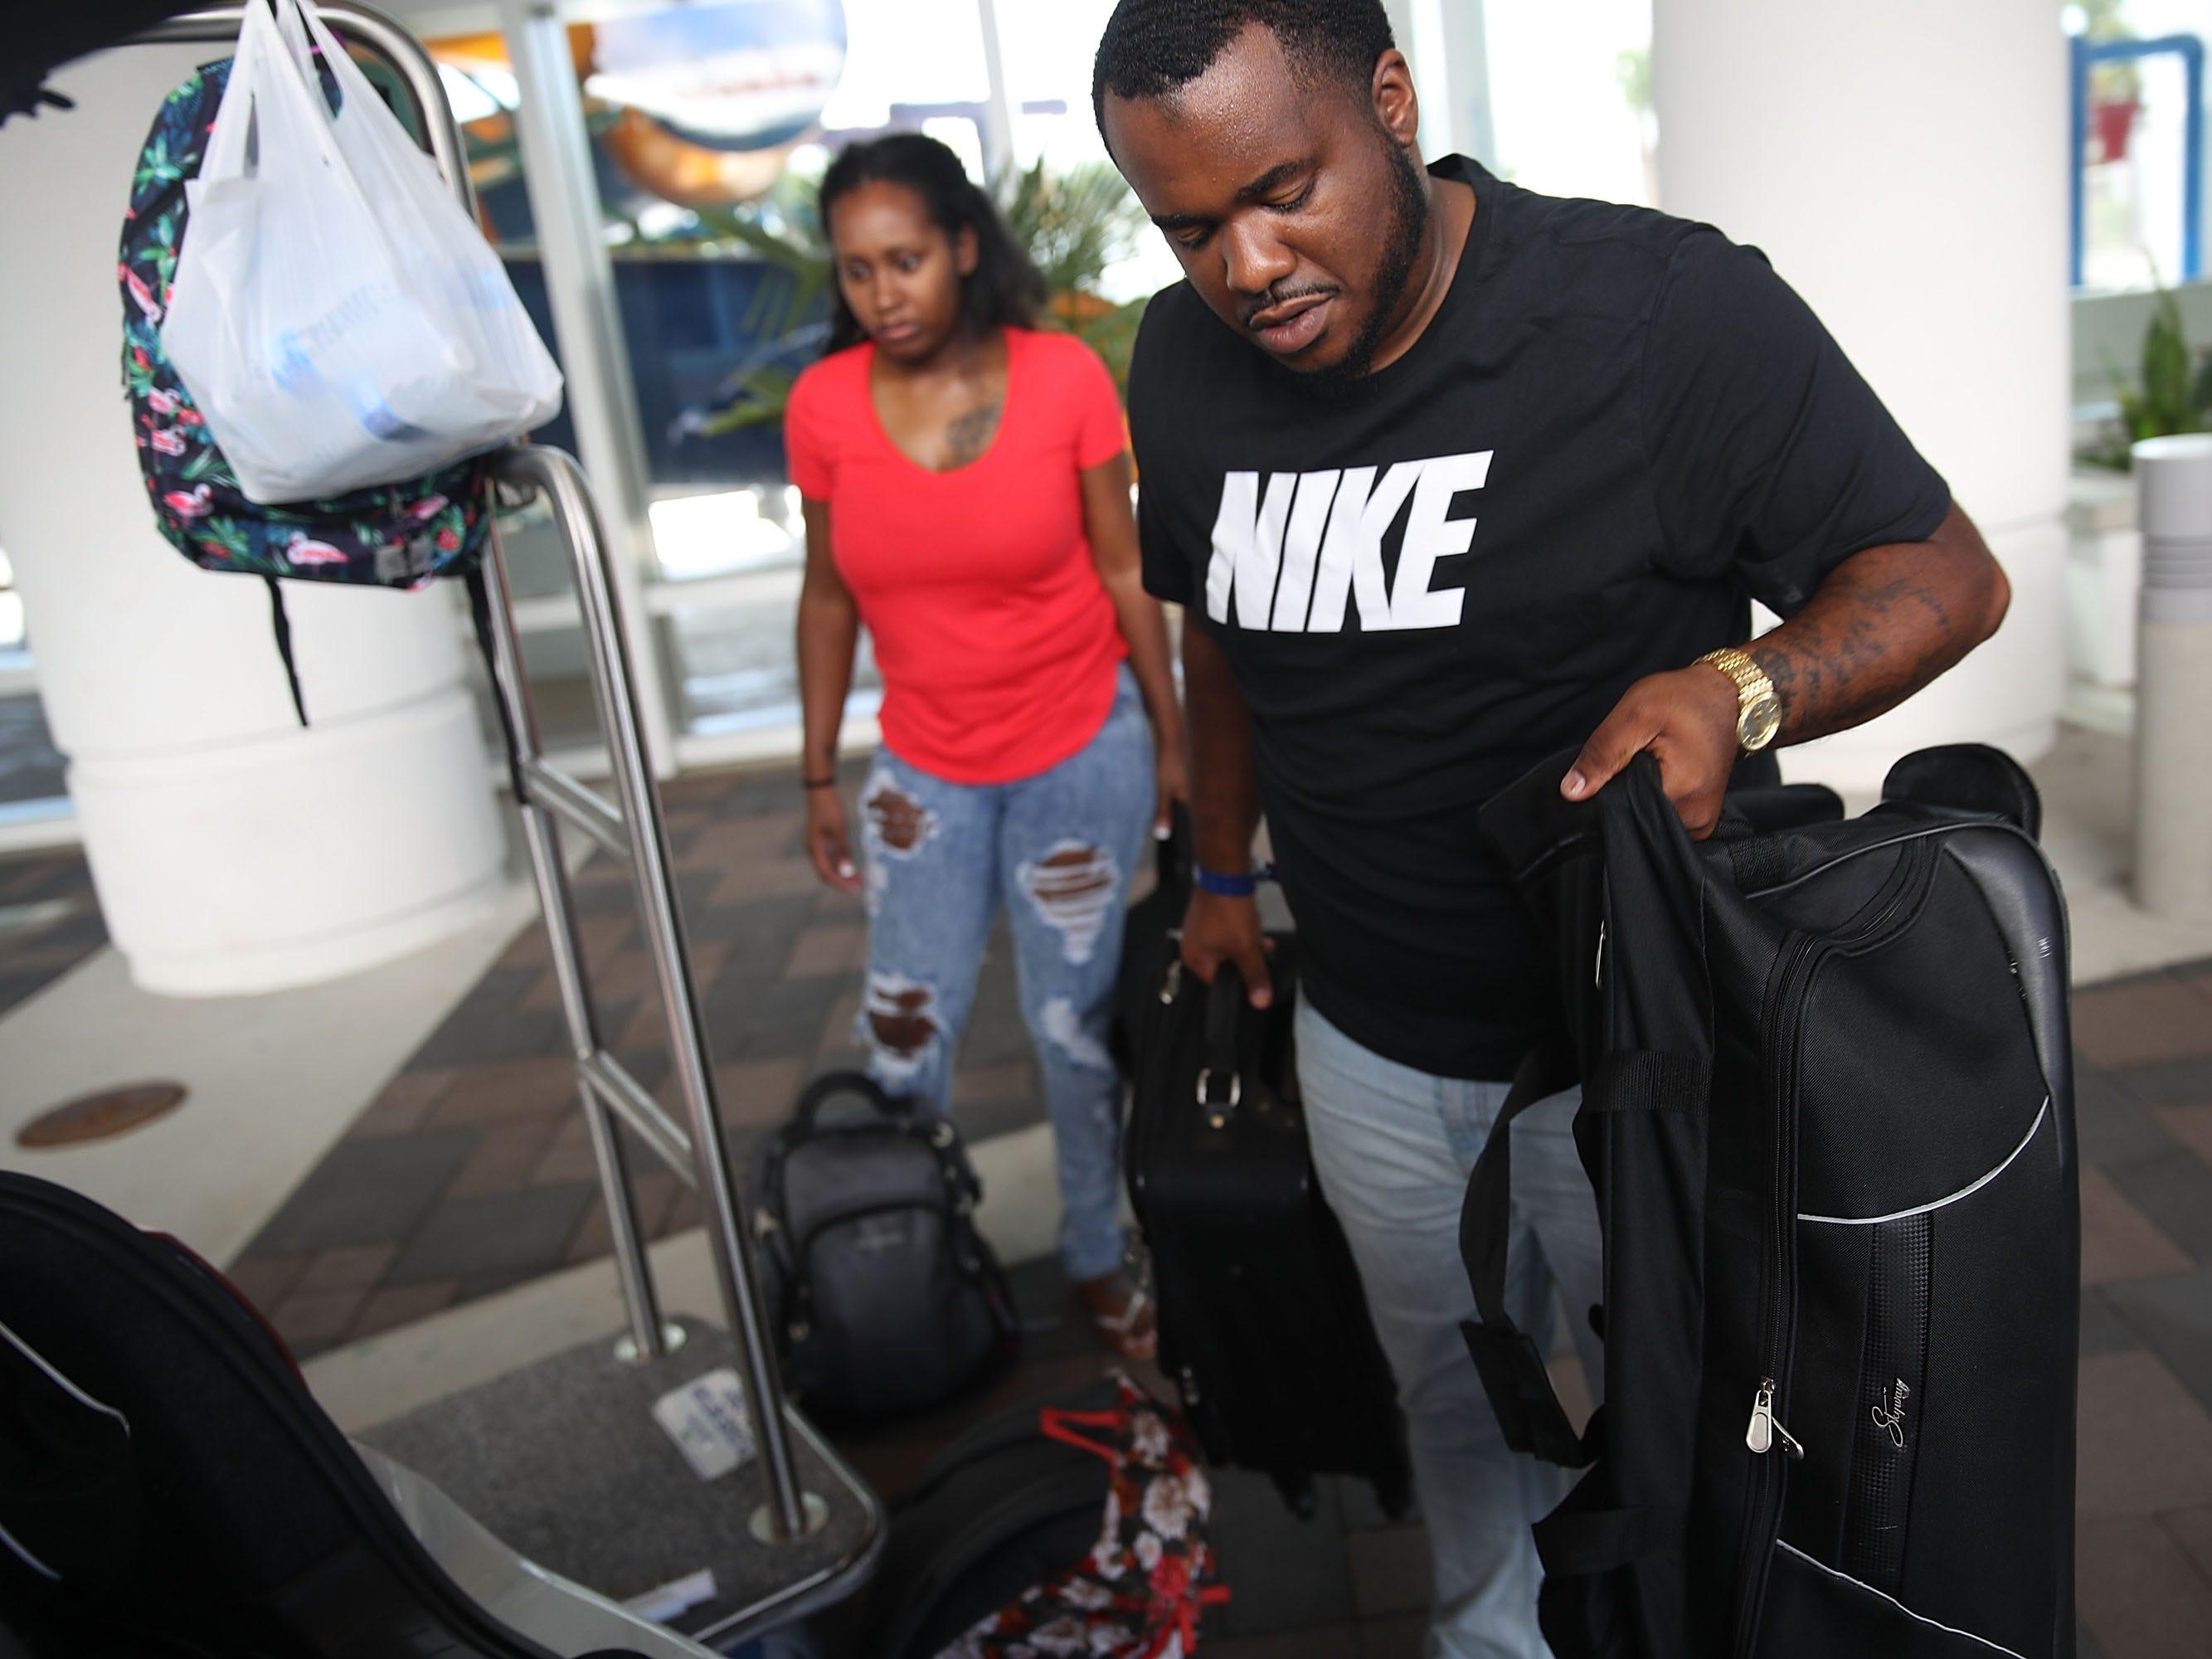 MYRTLE BEACH, SC - SEPTEMBER 11:  Marcus Thurston and his wife Shenae Thurston cut short their vacation and evacuate the South Bay Inn and Suites hotel ahead of the arrival of Hurricane Florence on September 11, 2018 in Myrtle Beach, South Carolina. Florence is expected to make landfall by late Thursday to near Category 5 strength along the Virginia, North Carolina and South Carolina coastline.  (Photo by Joe Raedle/Getty Images) ORG XMIT: 775225768 ORIG FILE ID: 1031243048